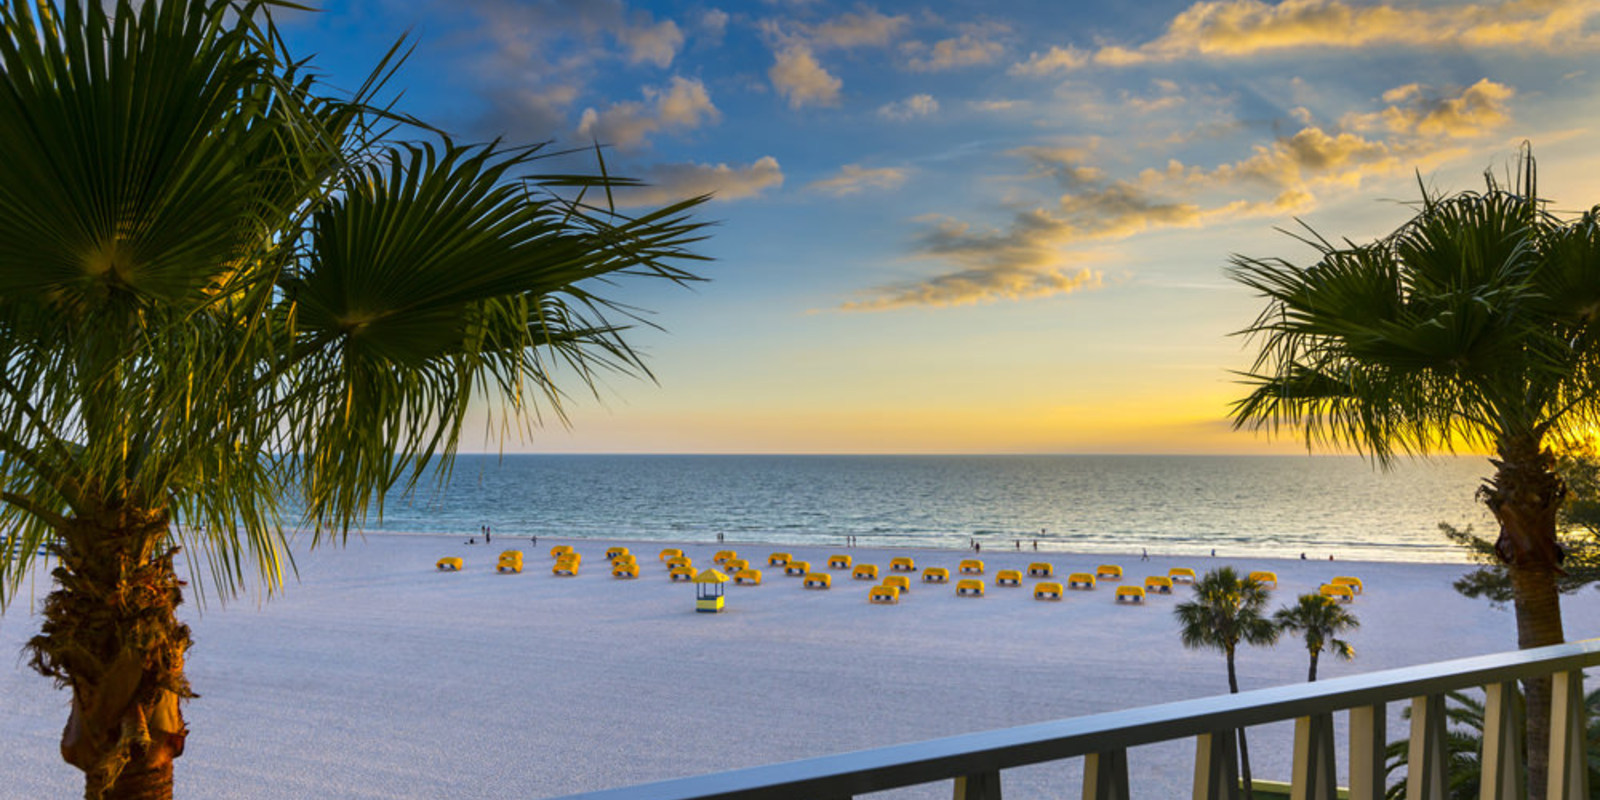 st pete beach real estate | st pete beach homes and condos for sale